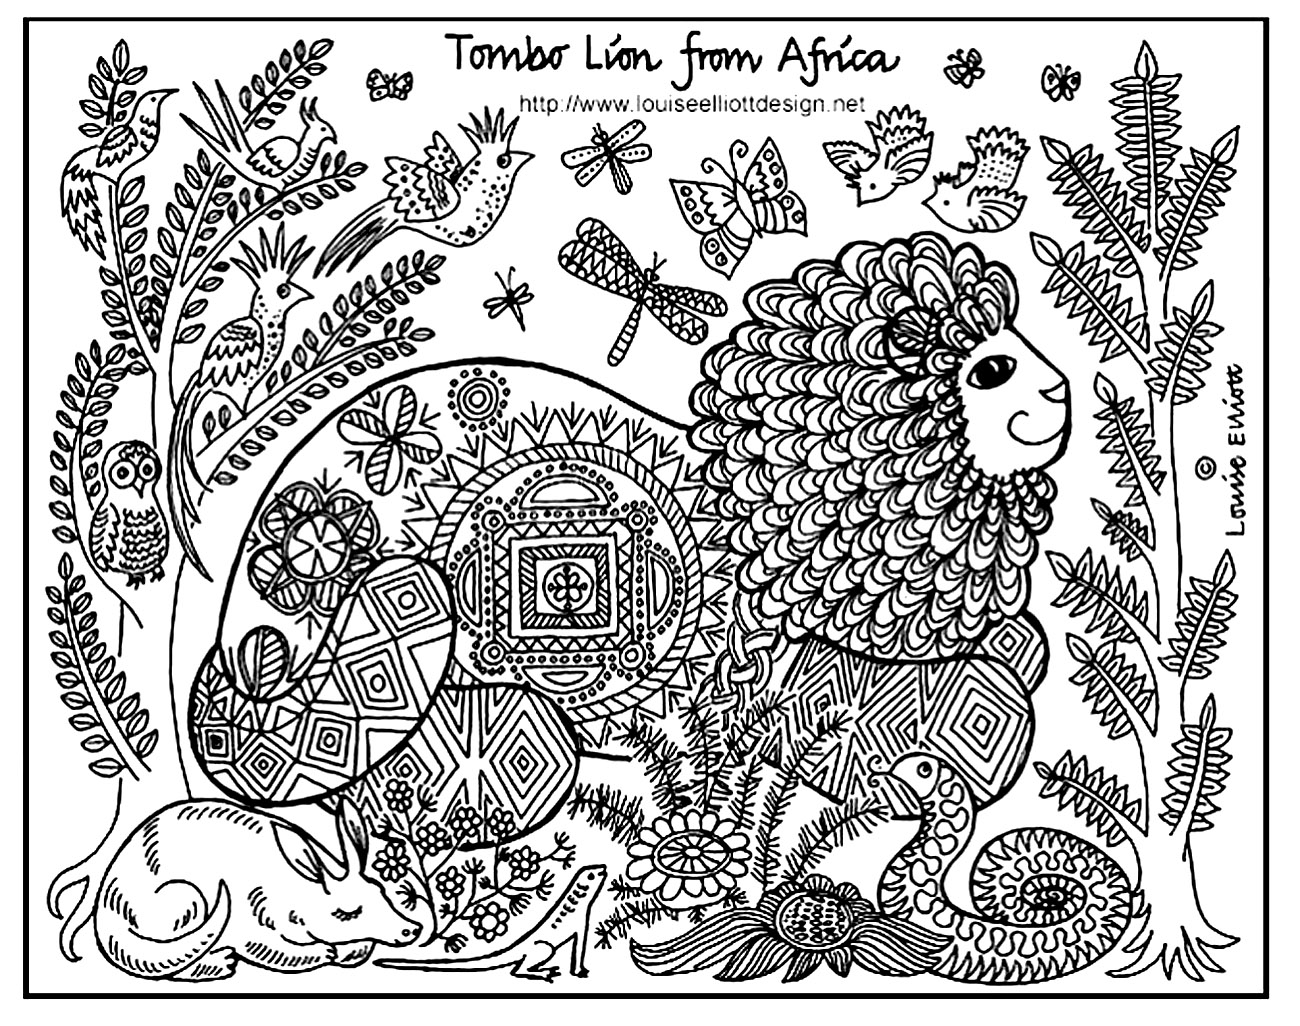 Drawing 'Tombo Lion of Africa' (source : Louise Elliot)